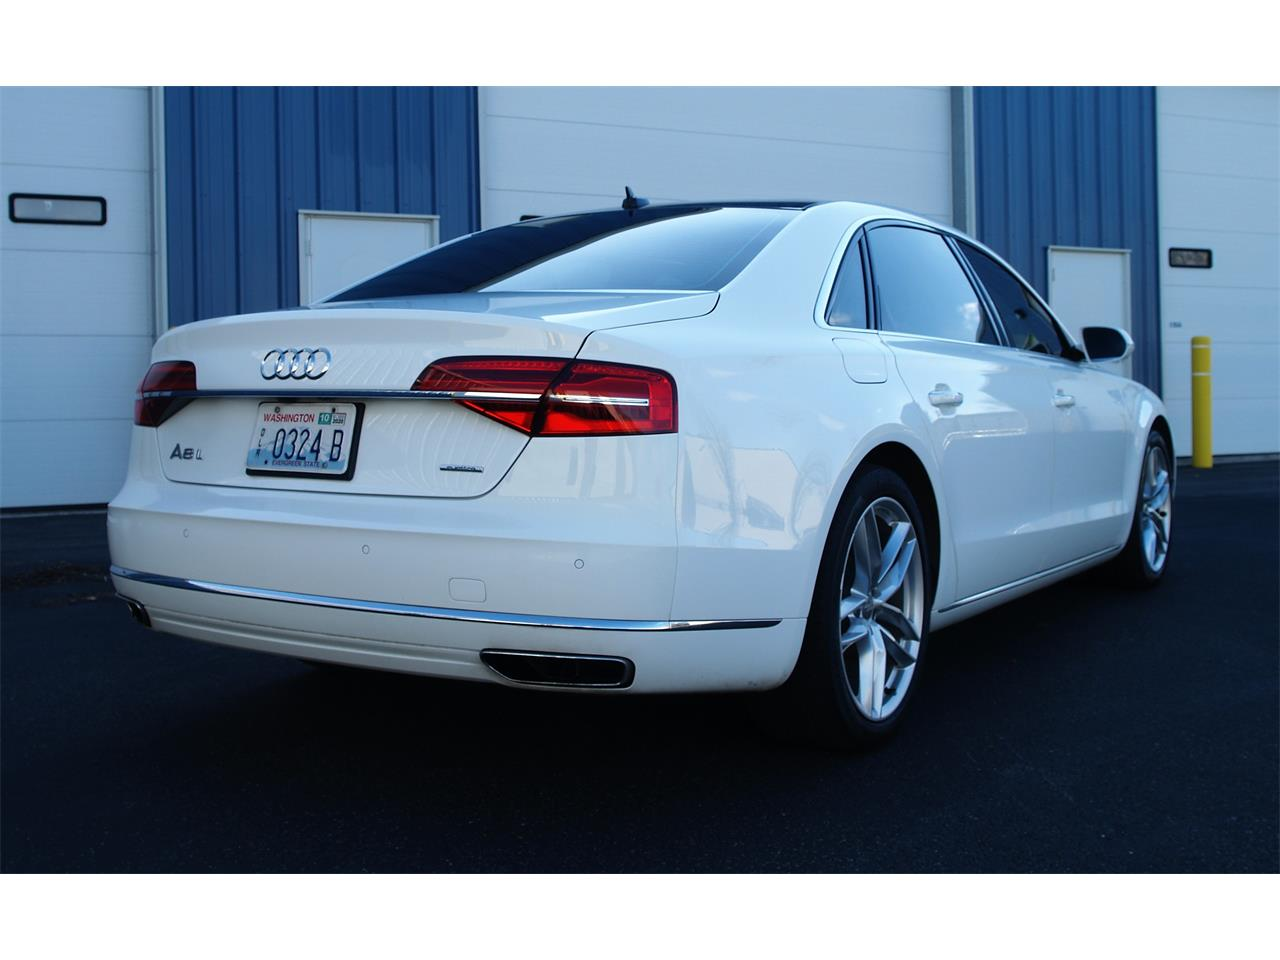 2015 Audi A8 (CC-1328169) for sale in SPOKANE, Washington